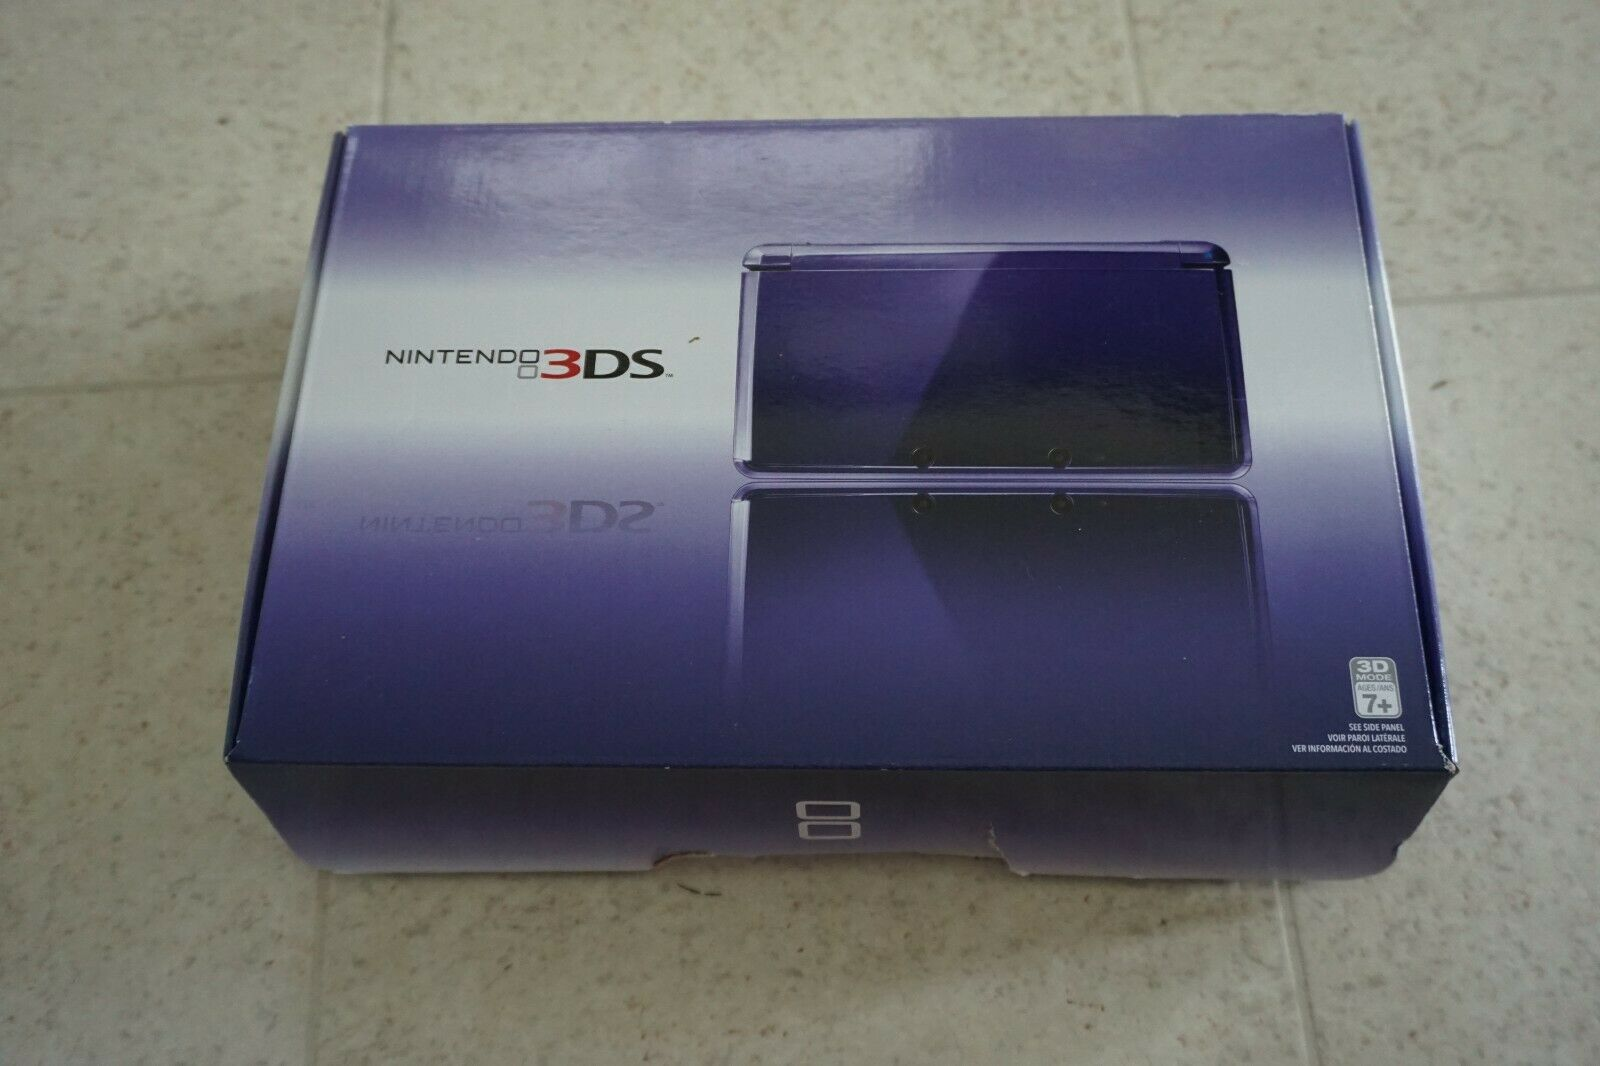 Nintendo 3DS Midnight Purple Portable Gaming Console, Complete in Box on eBay thumbnail